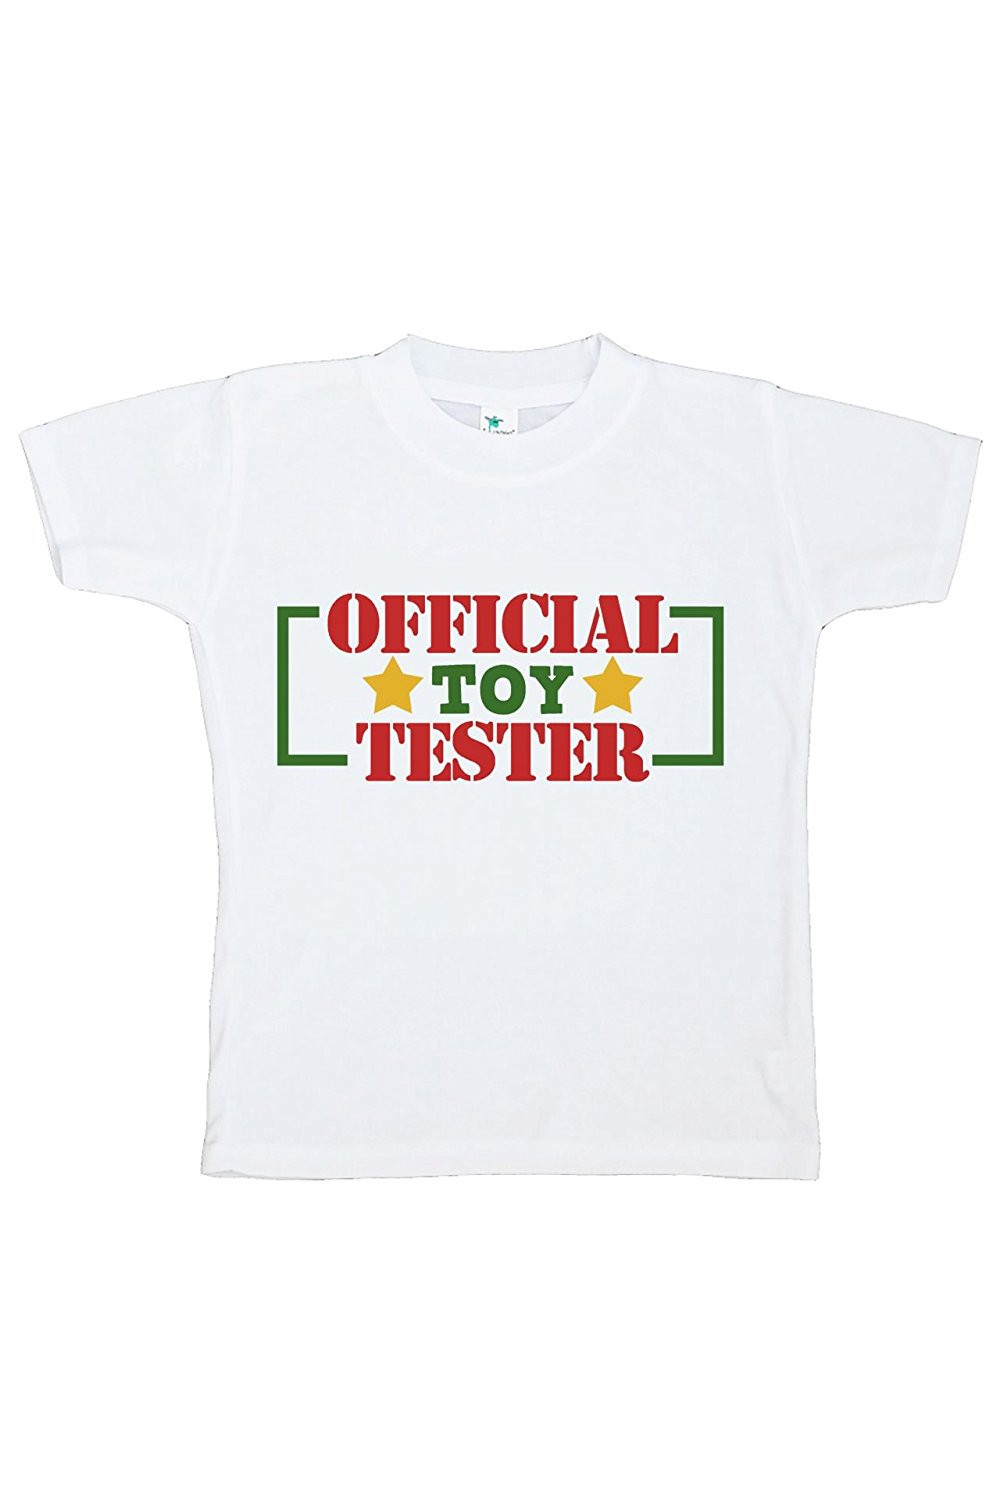 Custom Party Shop Youth Toy Tester Christmas T-shirt - Small (6-8) T-shirt